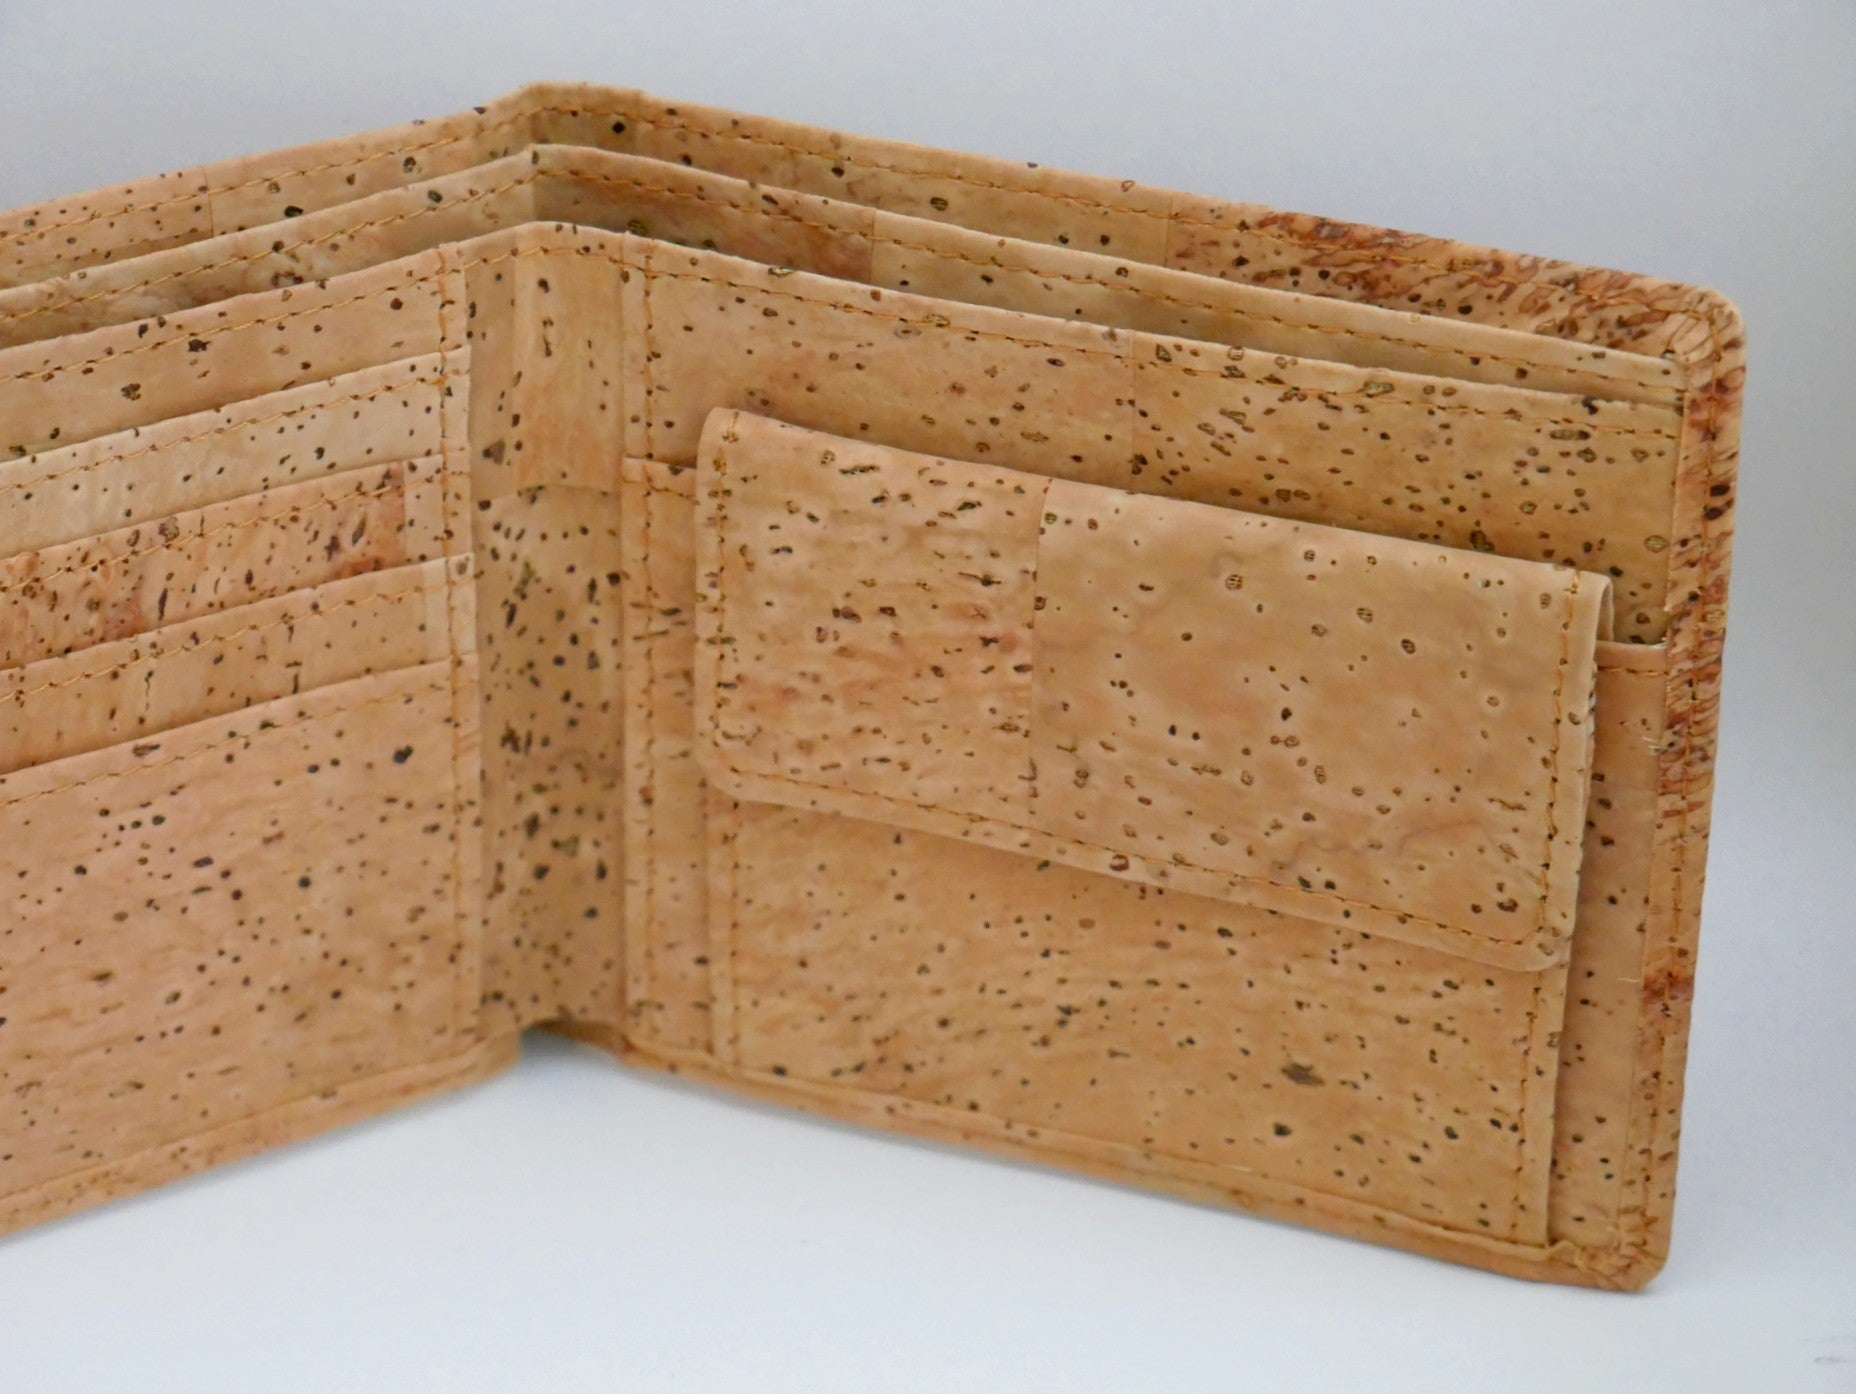 Vegan Cork Leather Wallet